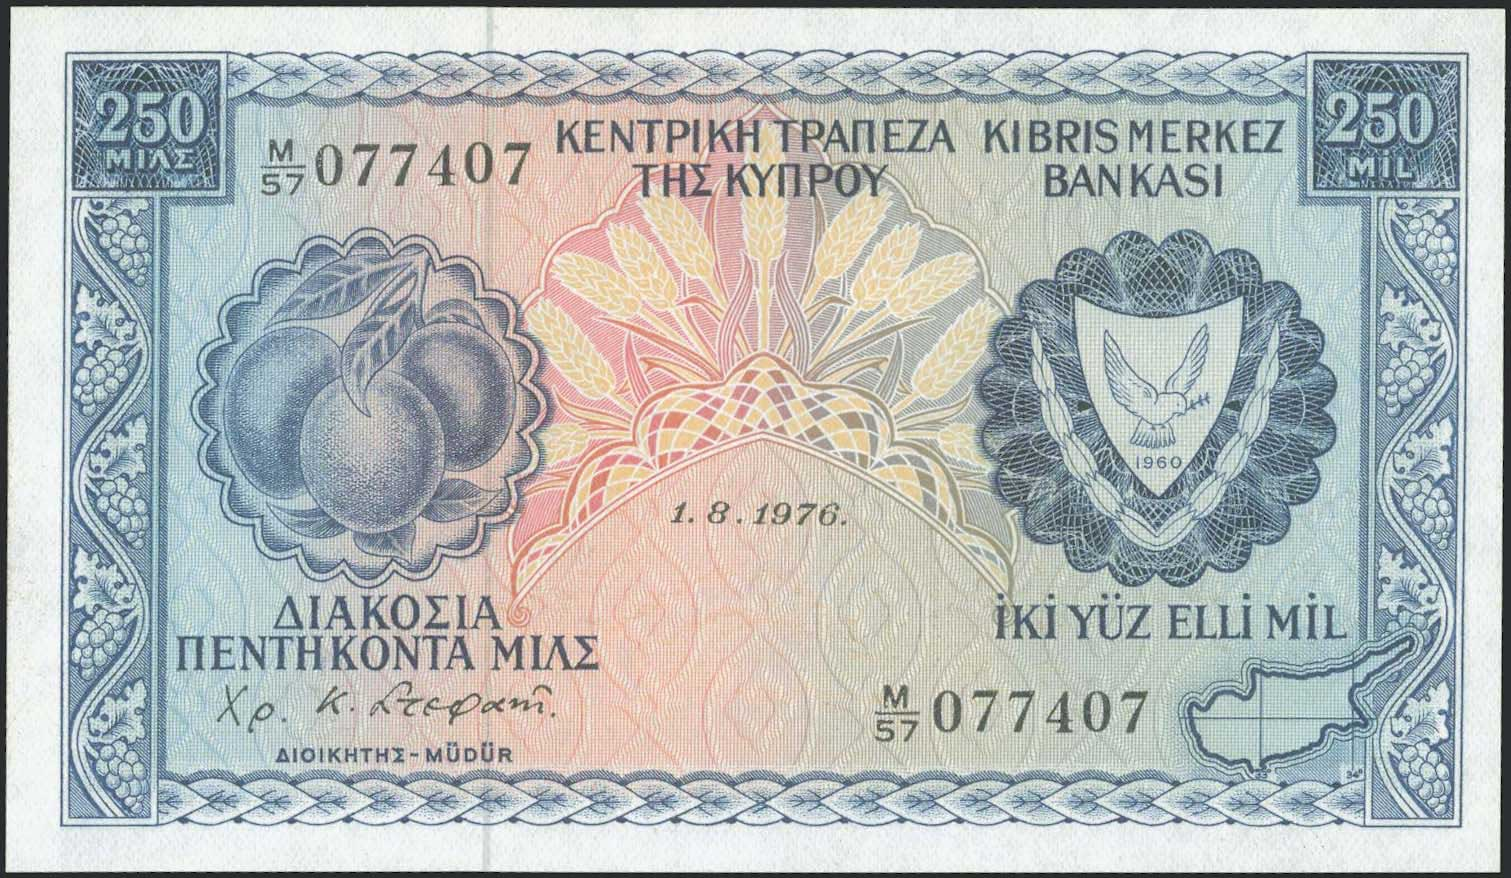 Lot 6359 - CYPRUS-  PAPER MONEY - BANKNOTES banknotes of cyprus -  A. Karamitsos Public & LIVE Bid Auction 588 Coins, Medals & Banknotes